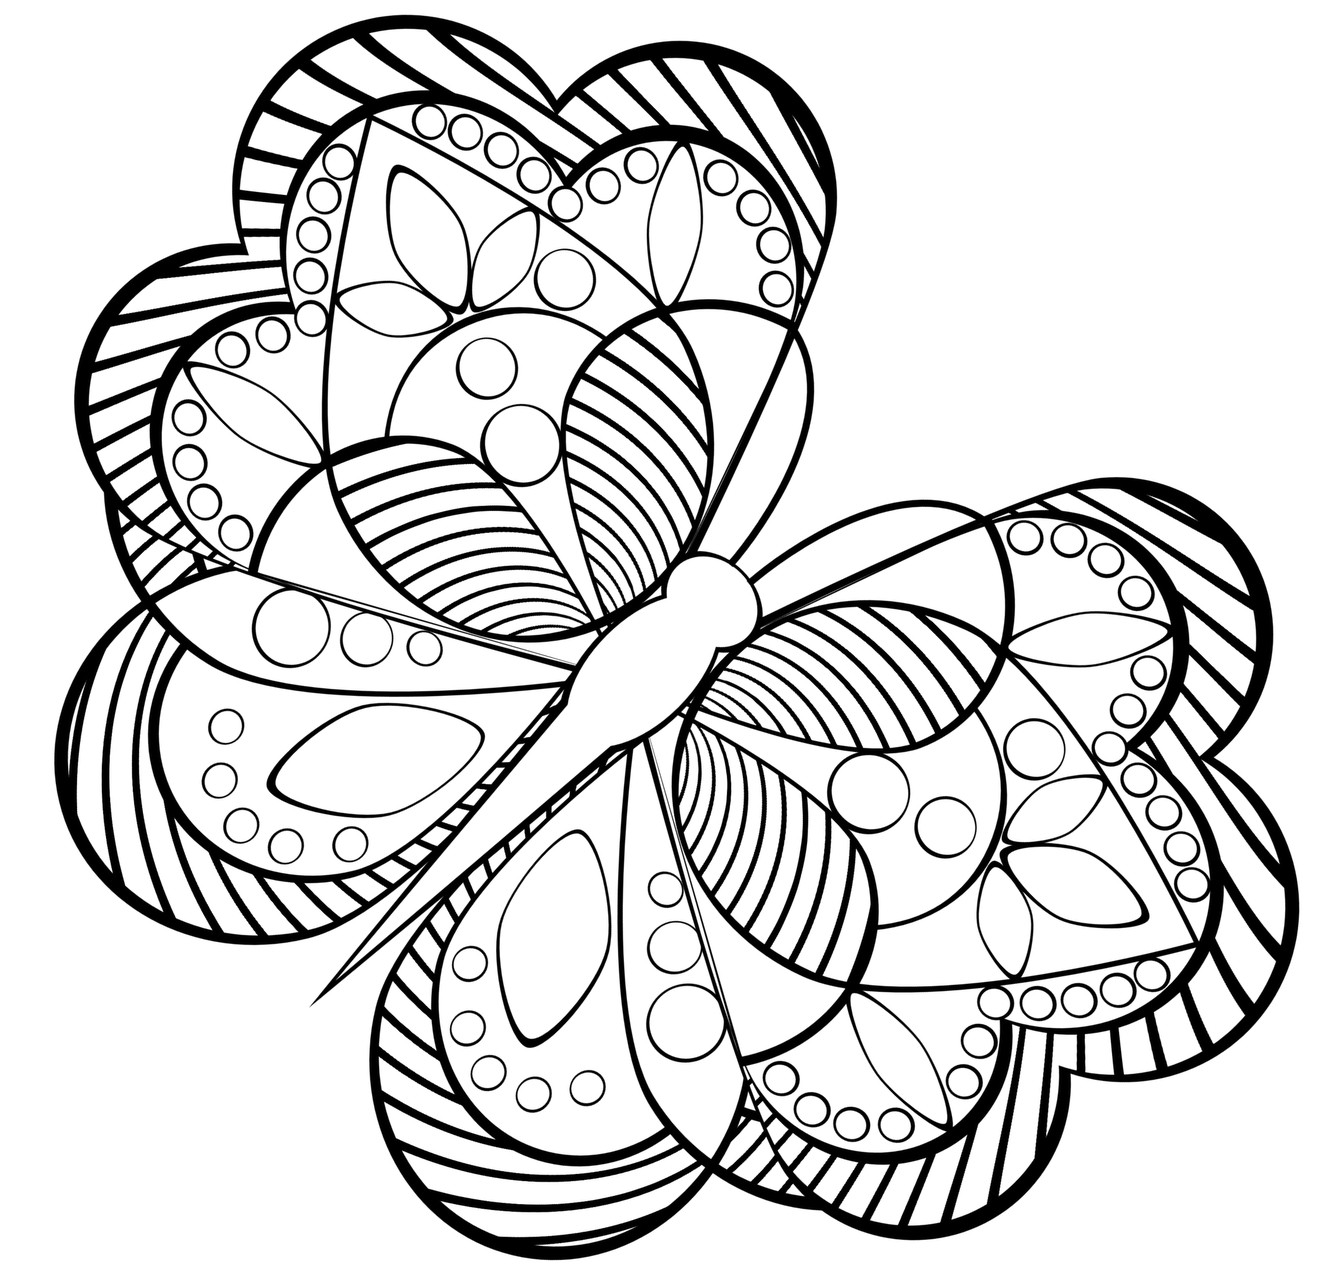 Printable Coloring Pages For Men  Free Coloring Pages For Adults To Print Special Image 12